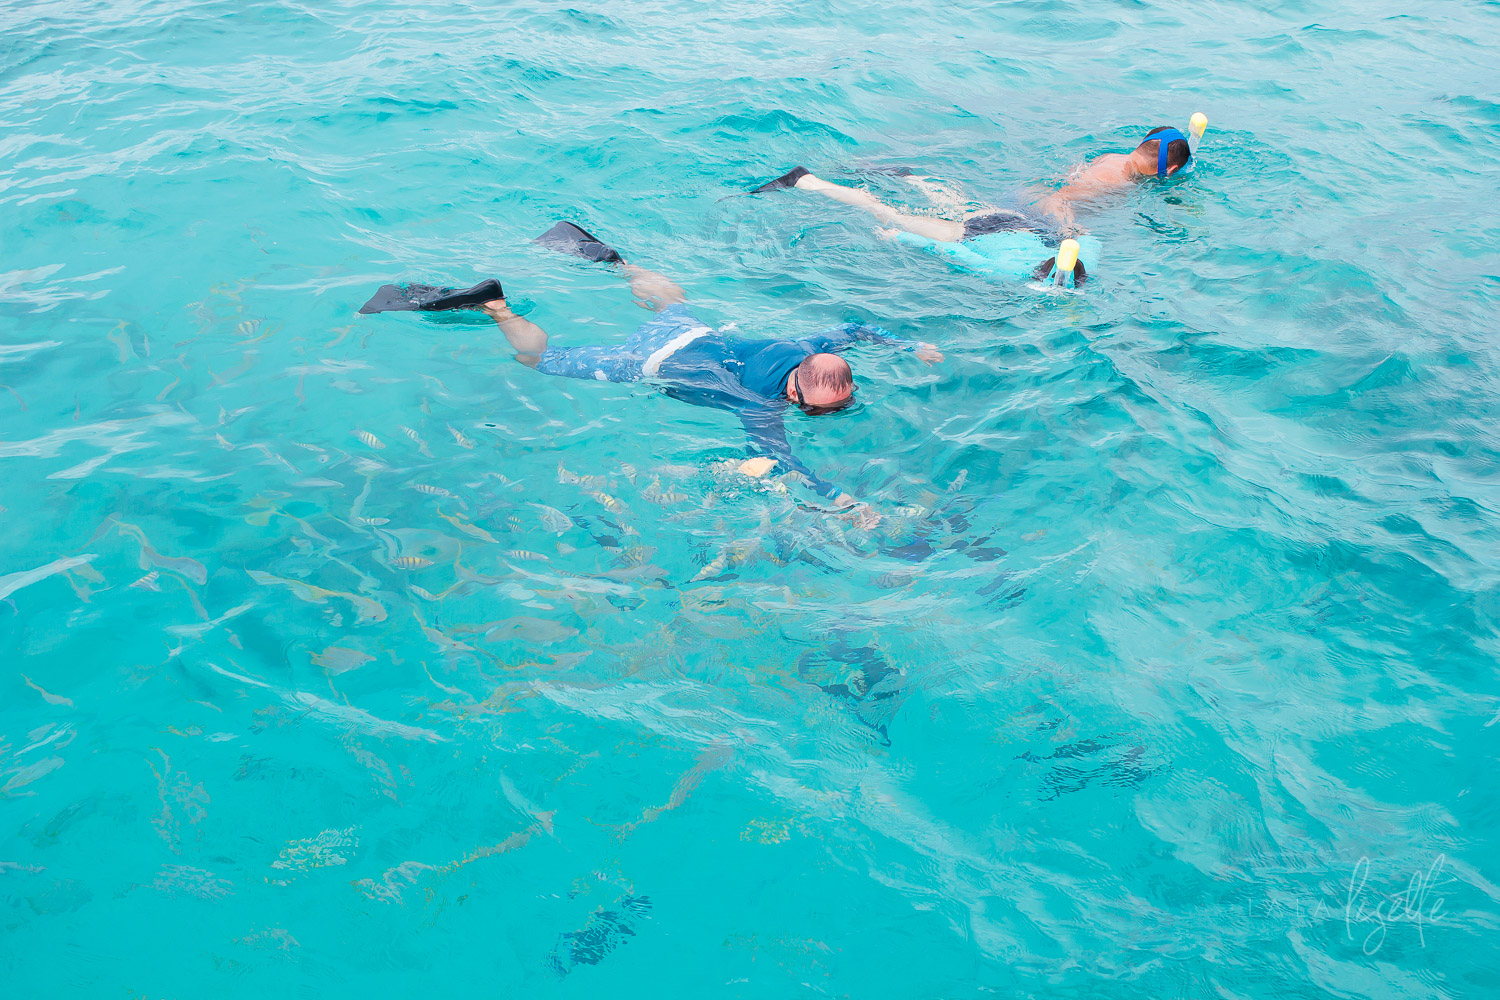 snorkeling-Icacos-Island-East-Island-Tours-Puerto-Rico